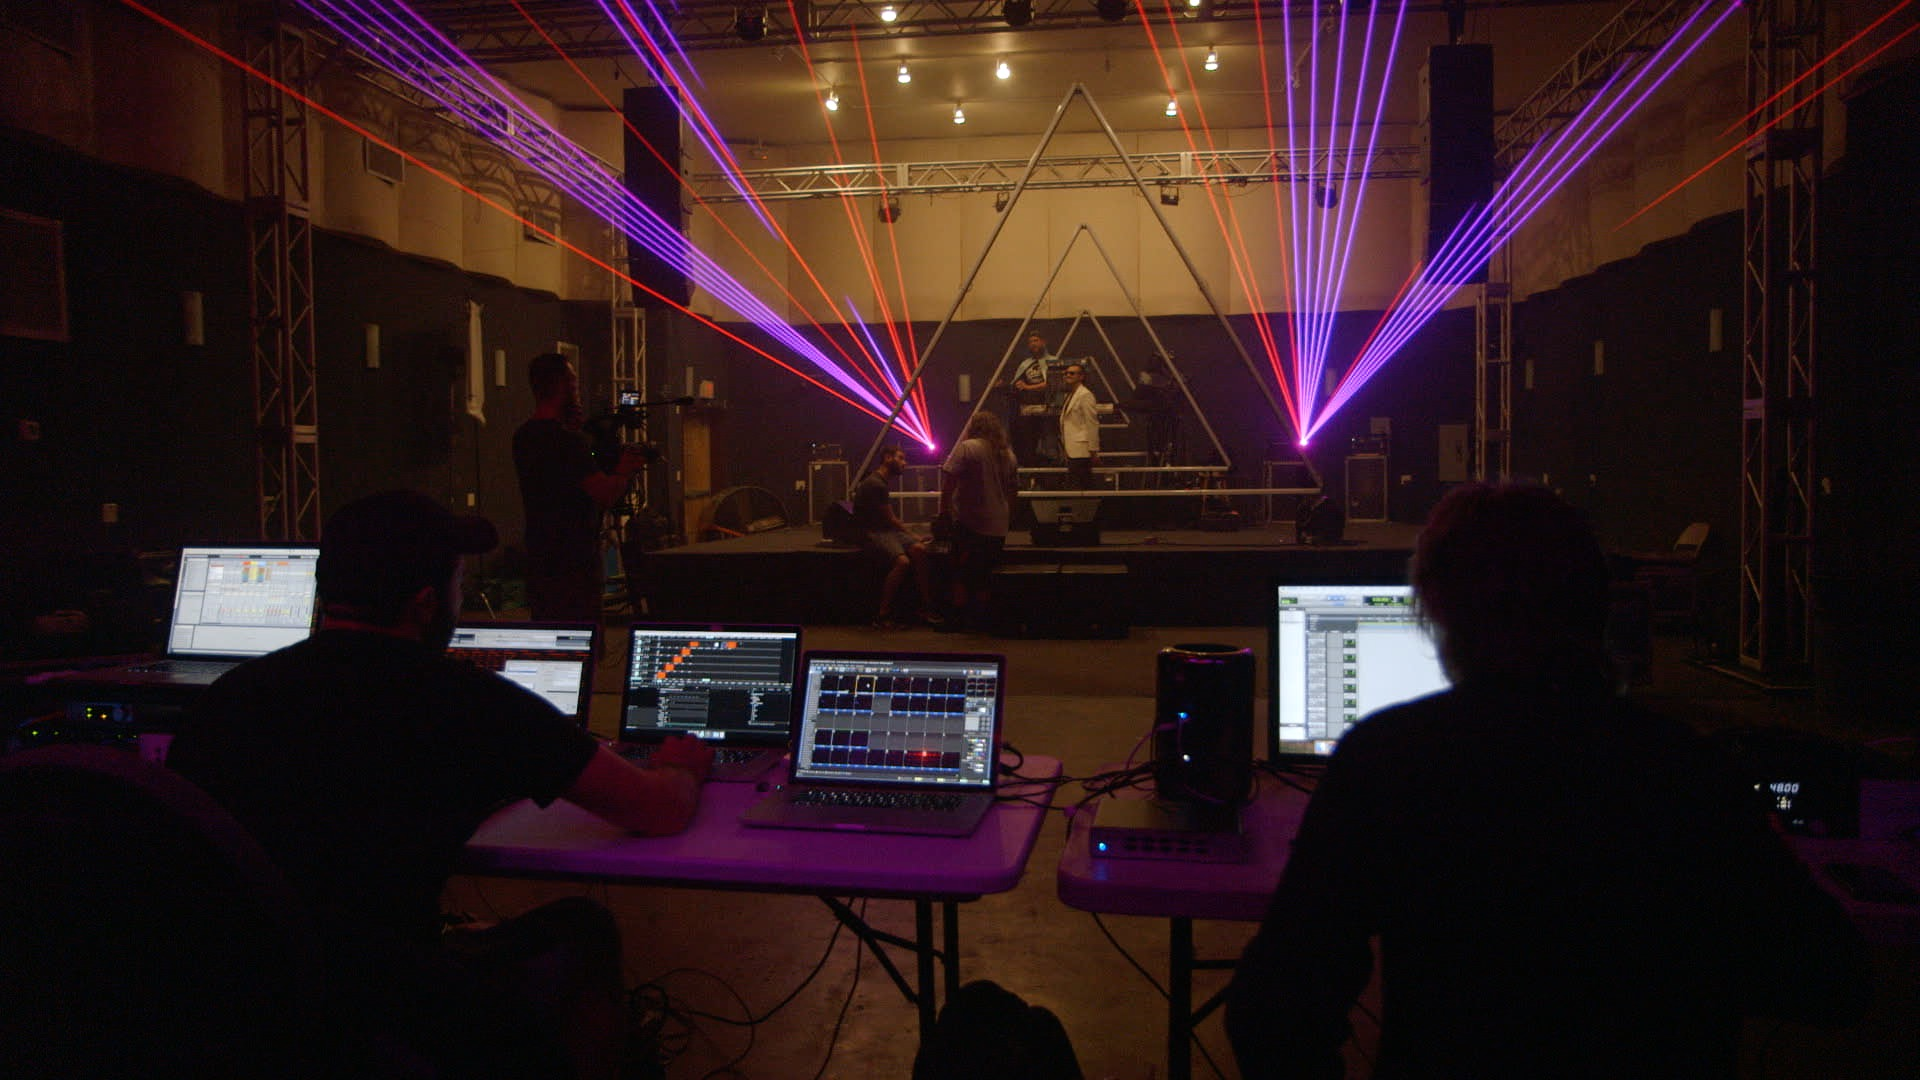 dox-video-production-austin-work-ghostland-BTS.jpg